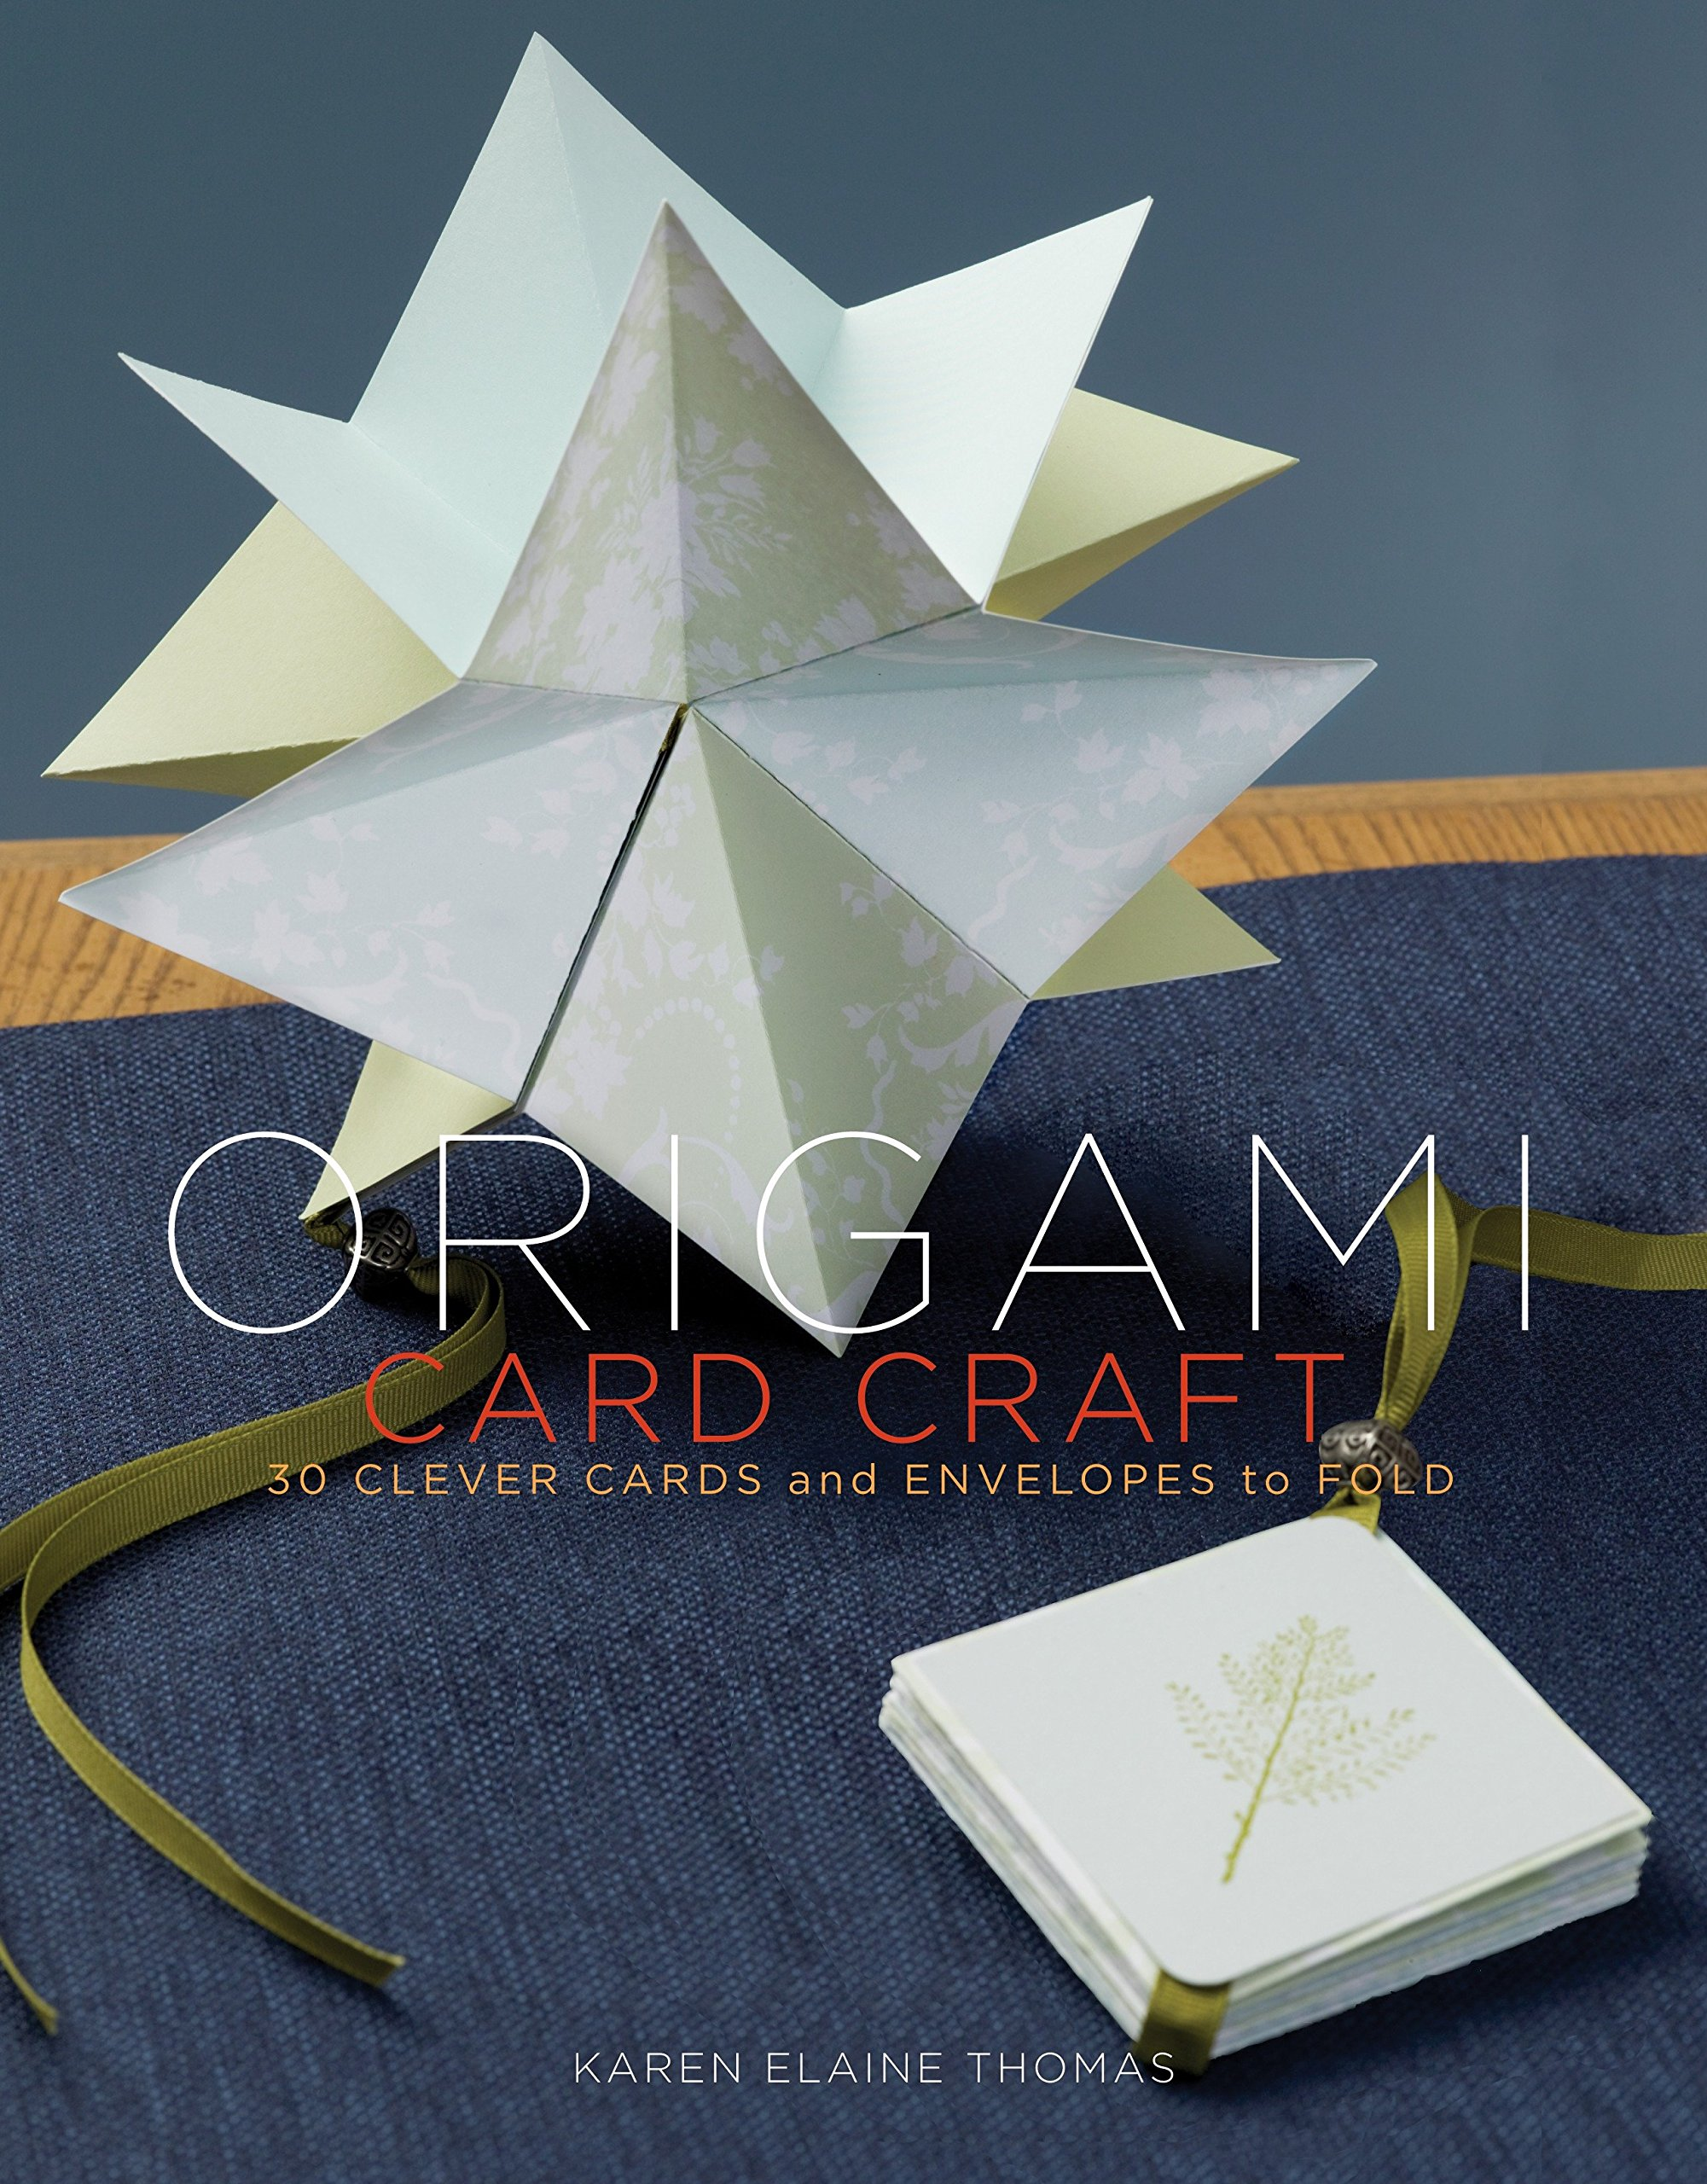 Origami Card Craft 30 Clever Cards And Envelopes To Fold Karen 3d Animation Diagrams Animated Diagram A Elaine Thomas 9780307408402 Books